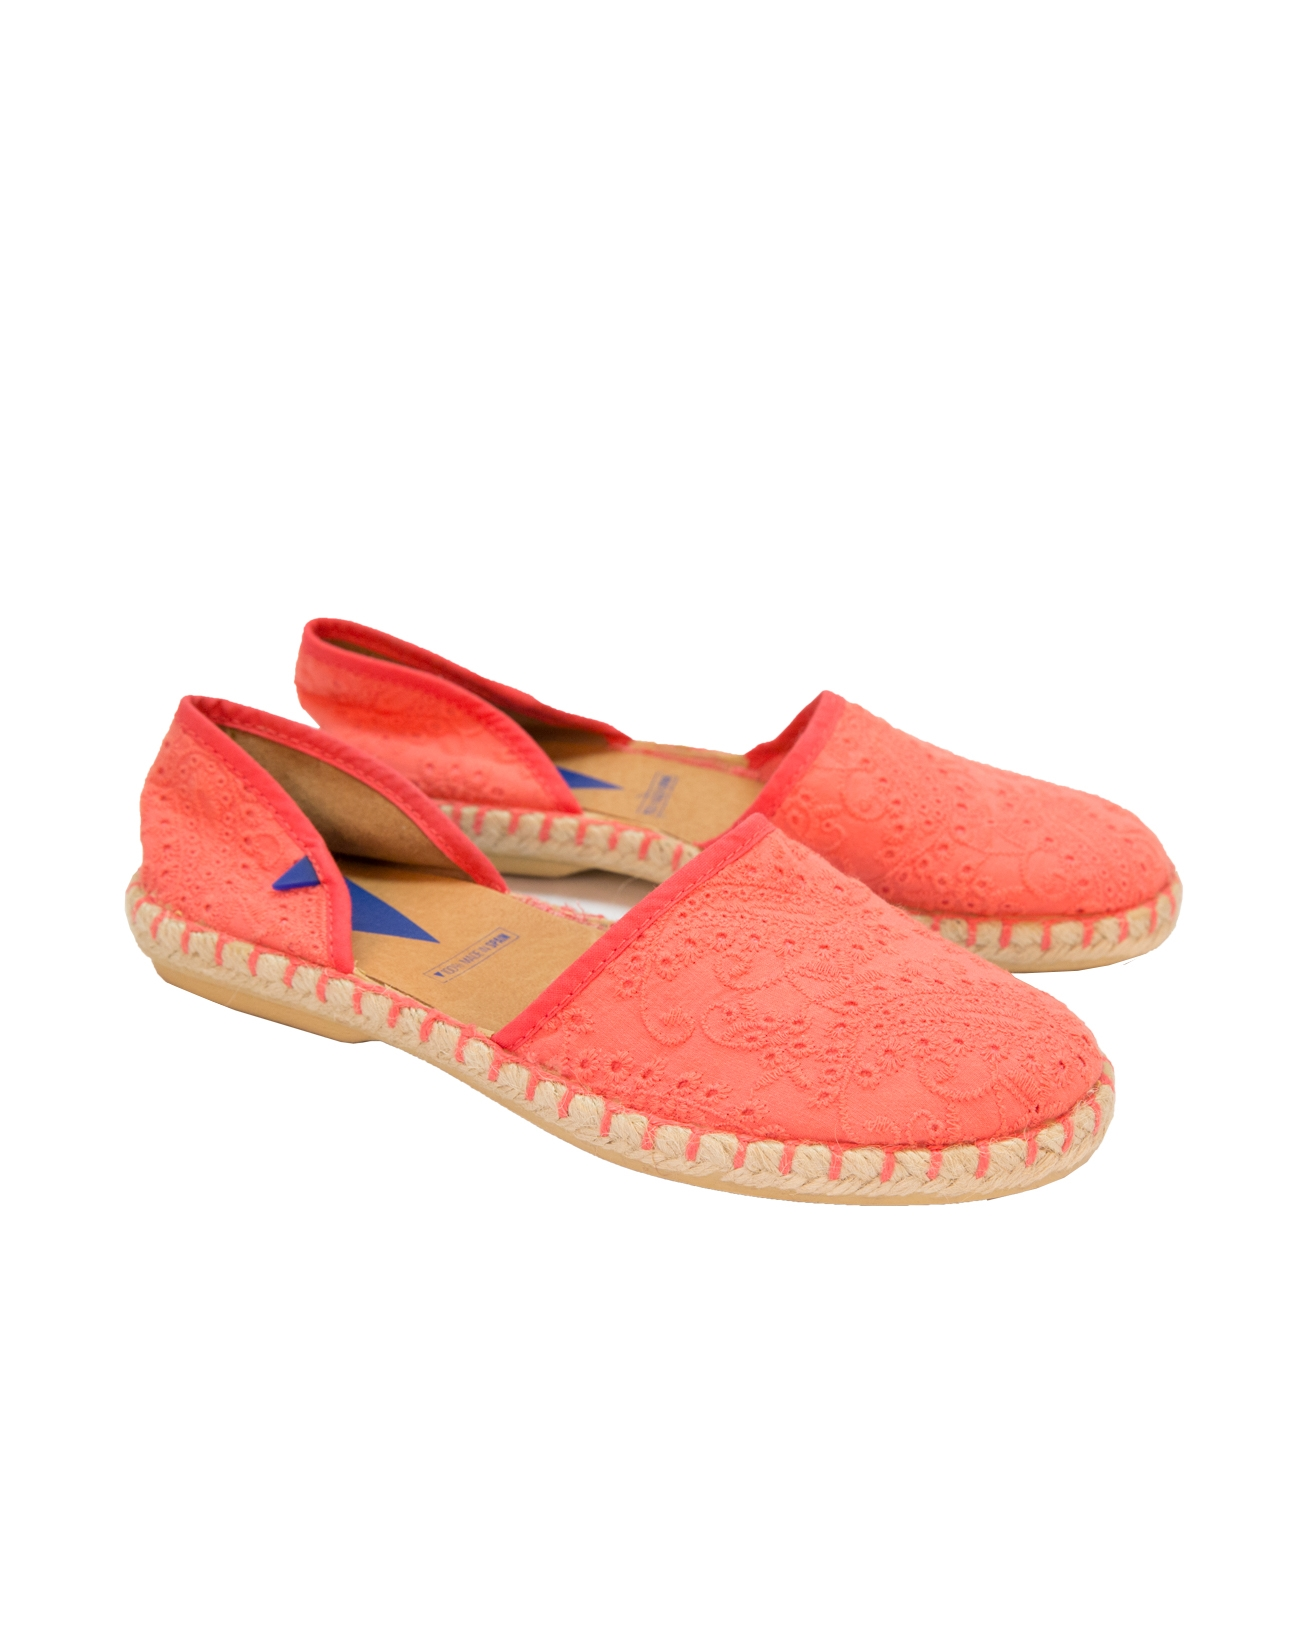 Canvas Pattern Flat Espadrille - Size 3 - Coral - 72